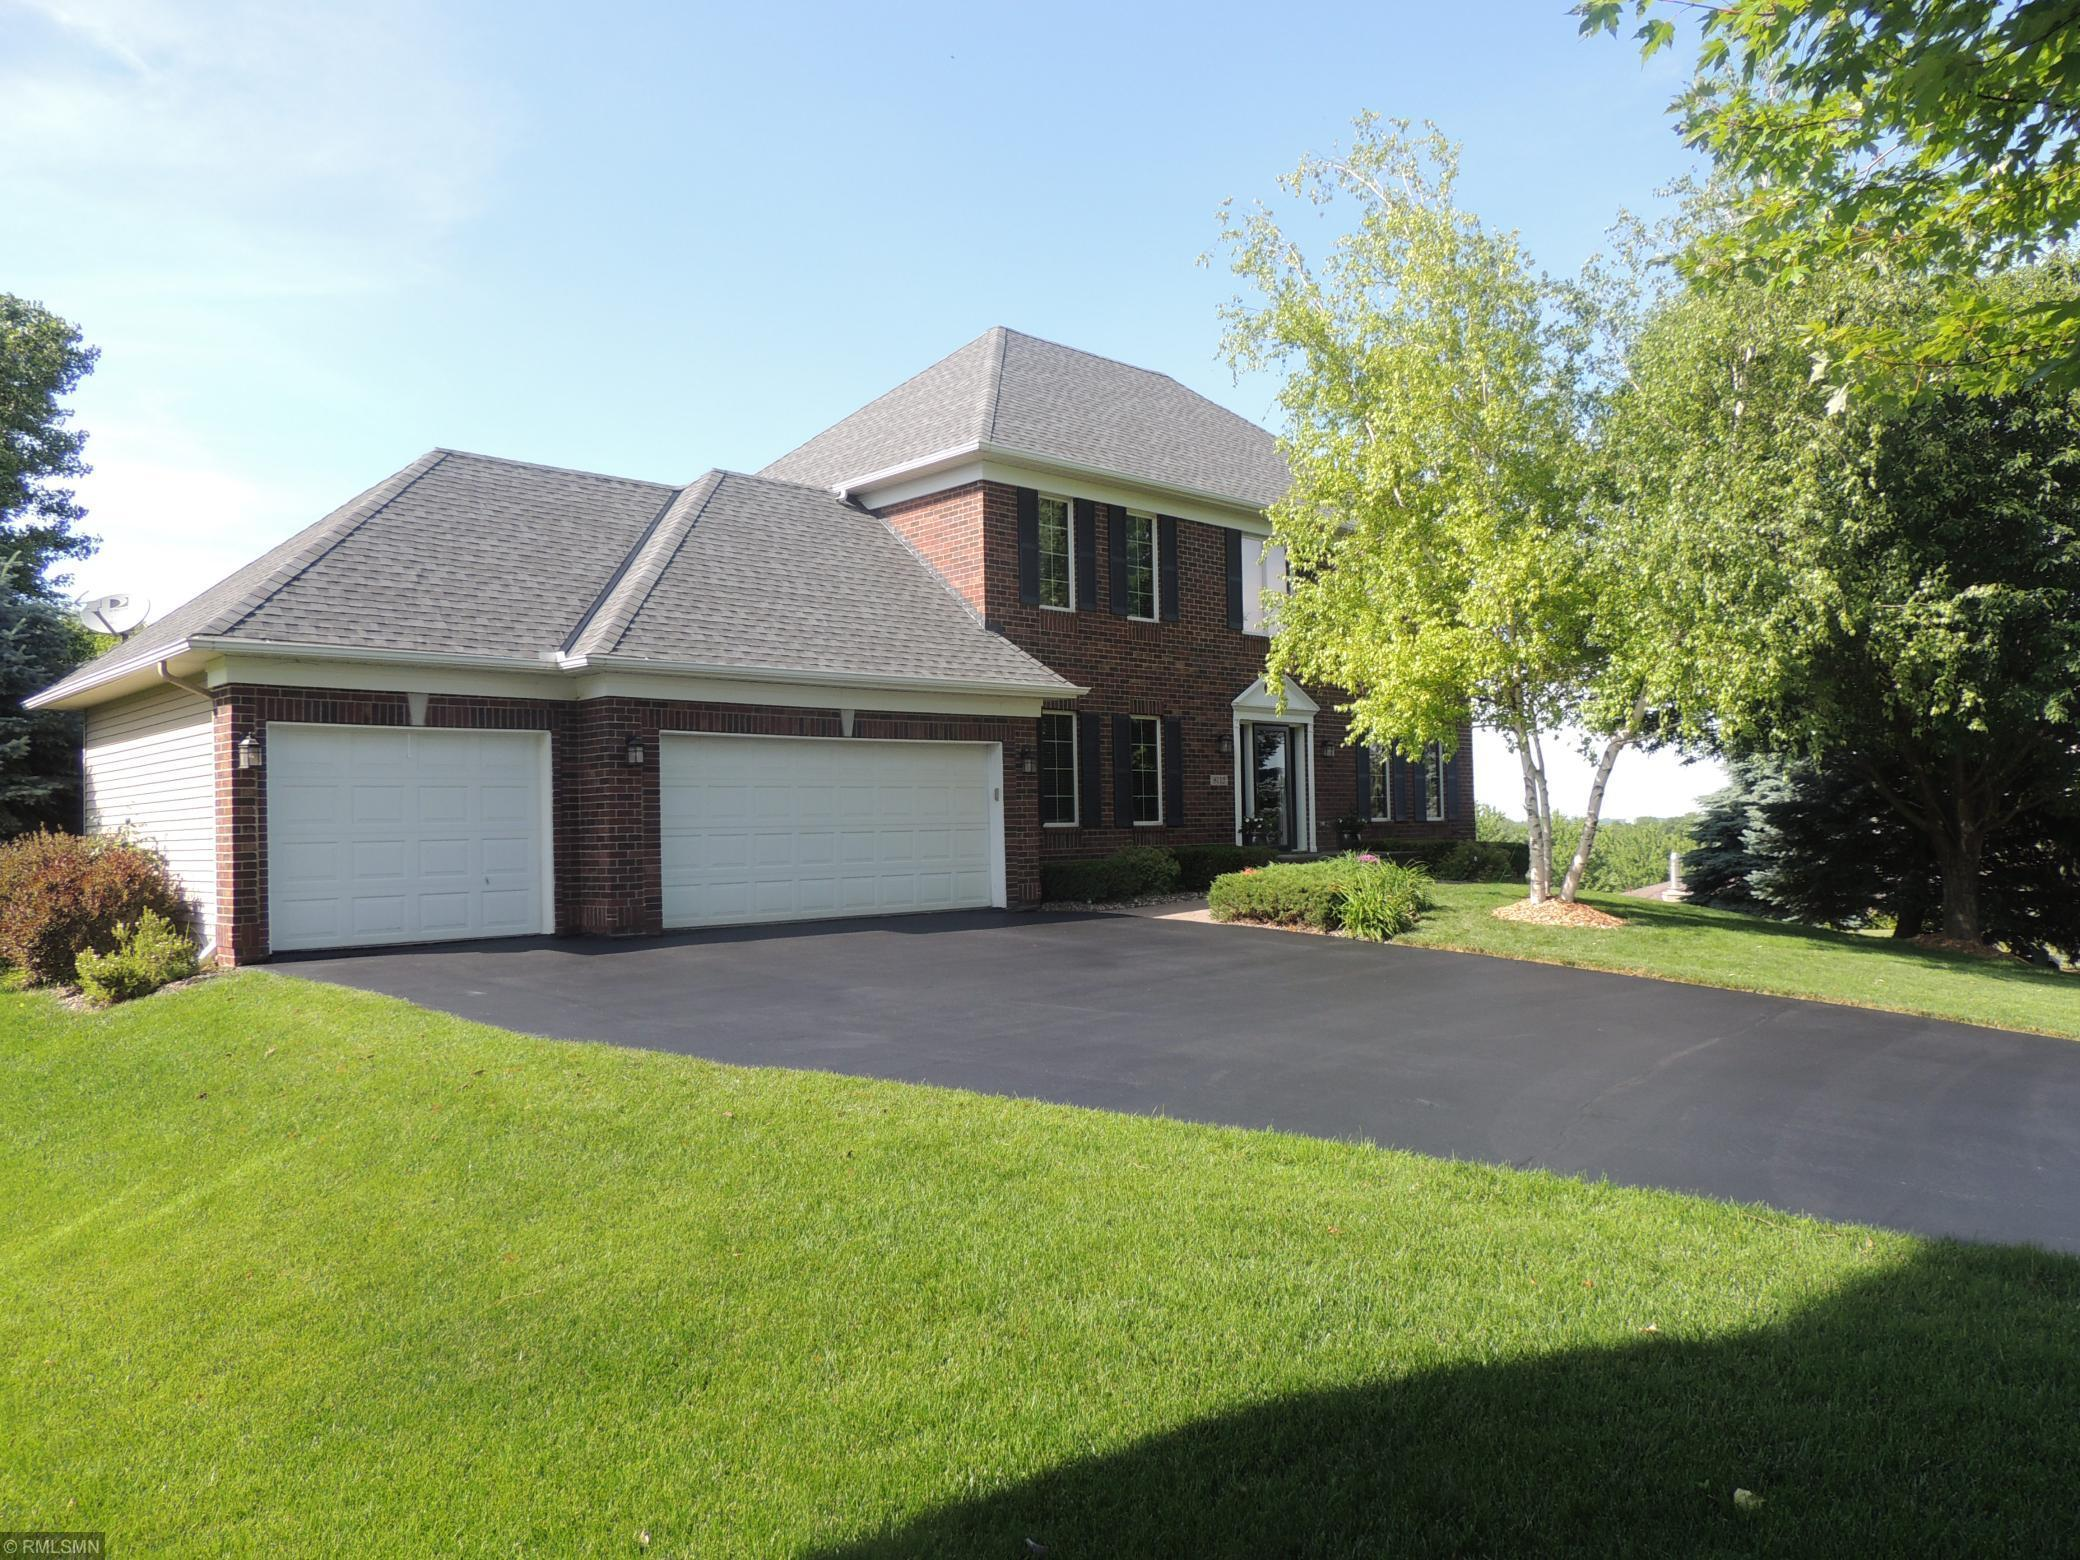 8112 Foxberry Bay Property Photo - Savage, MN real estate listing